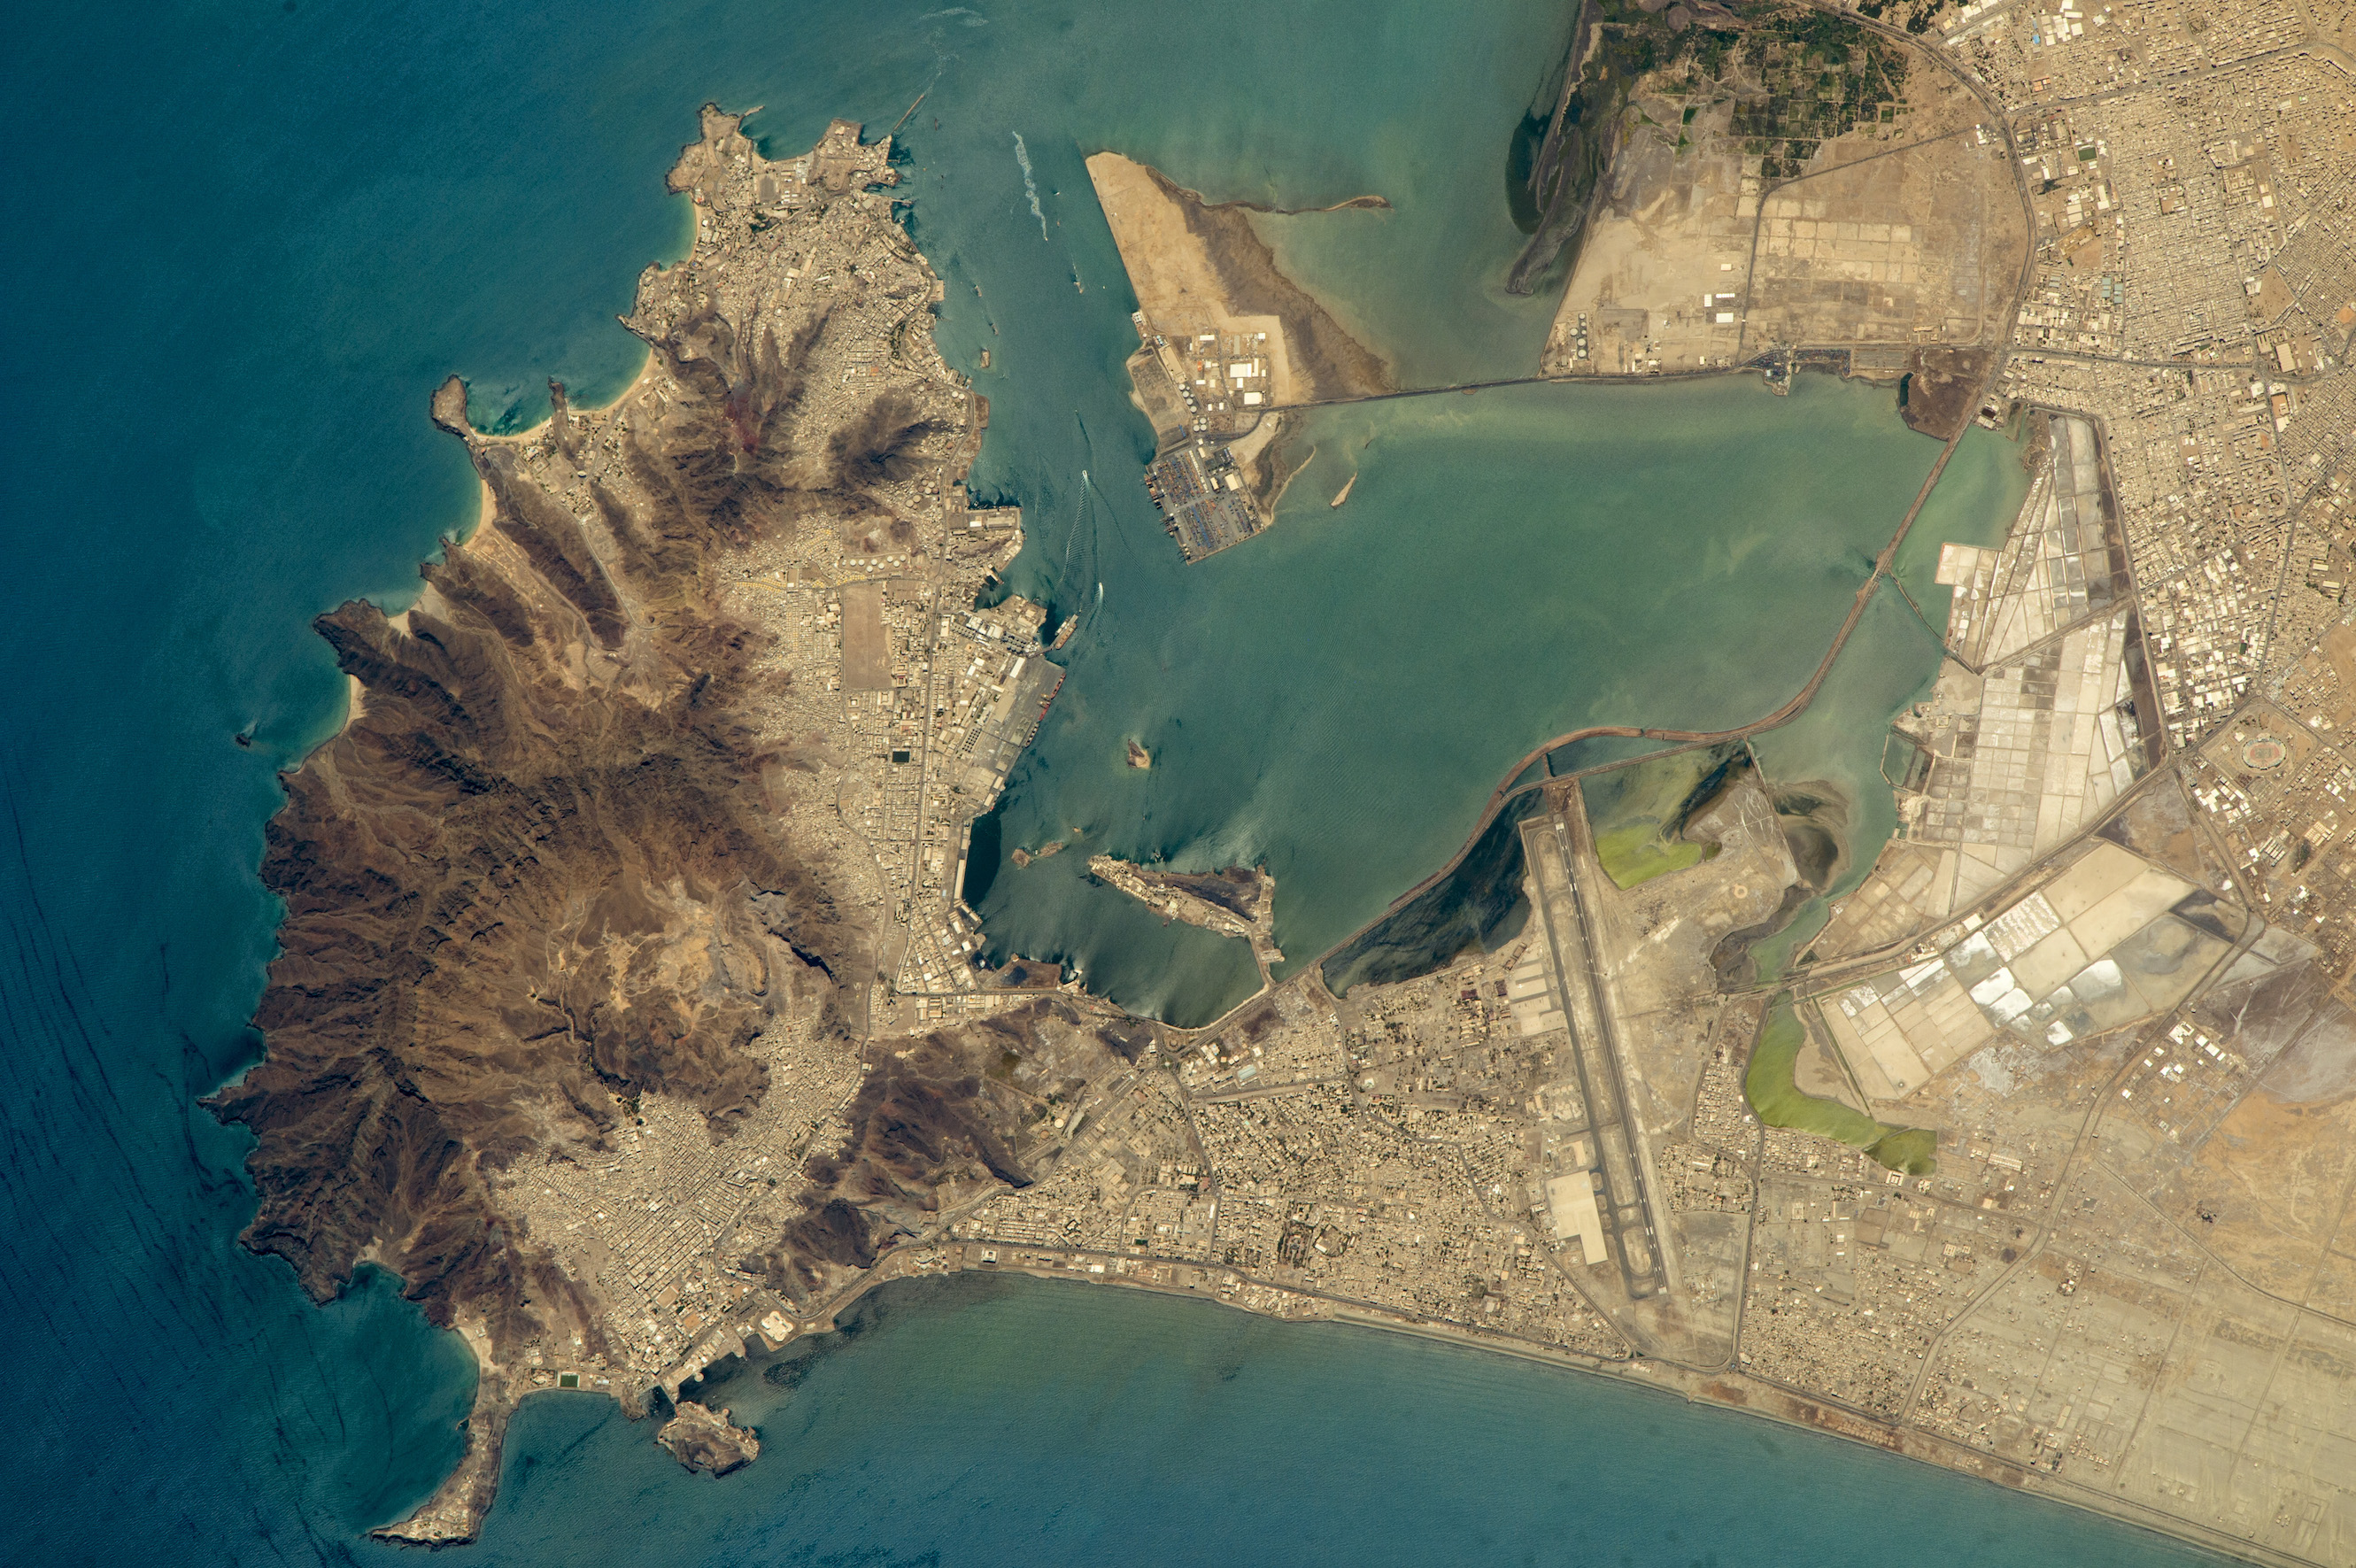 Today's Image of the Day comes thanks to the NASA Earth Observatory and features a look at an extinct volcano in the Port Of Aden, Yemen.